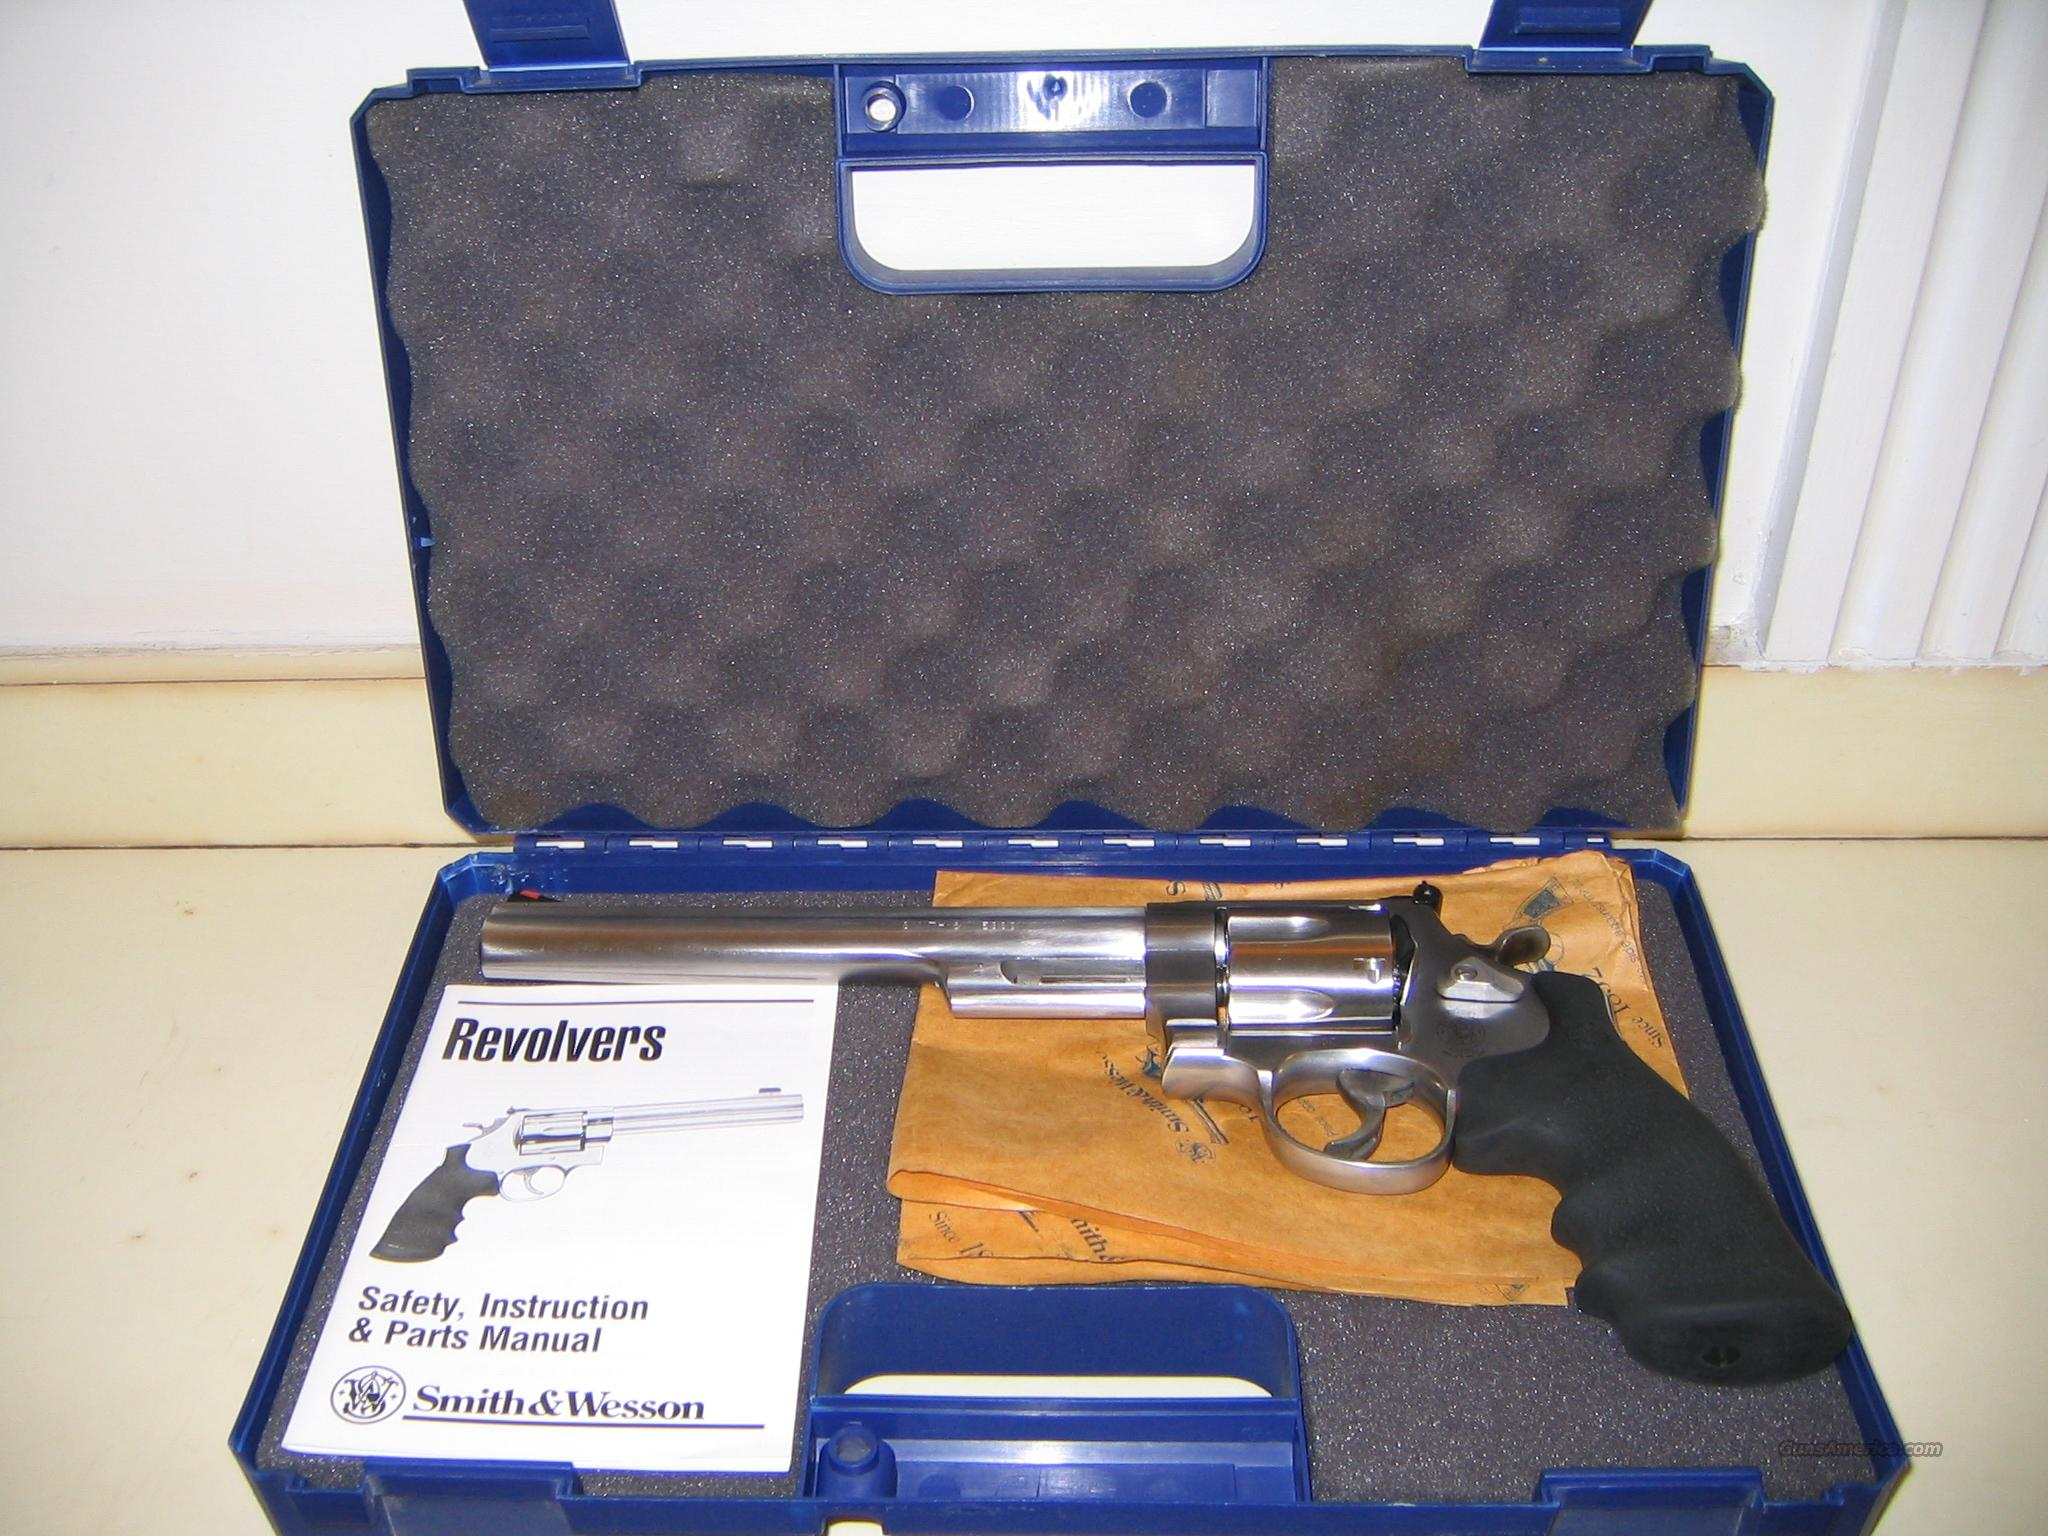 Smith & Wesson Model  629-6 44 Magnum 8 3/8 Barrel Satin Stainless  Guns > Pistols > Smith & Wesson Revolvers > Model 629